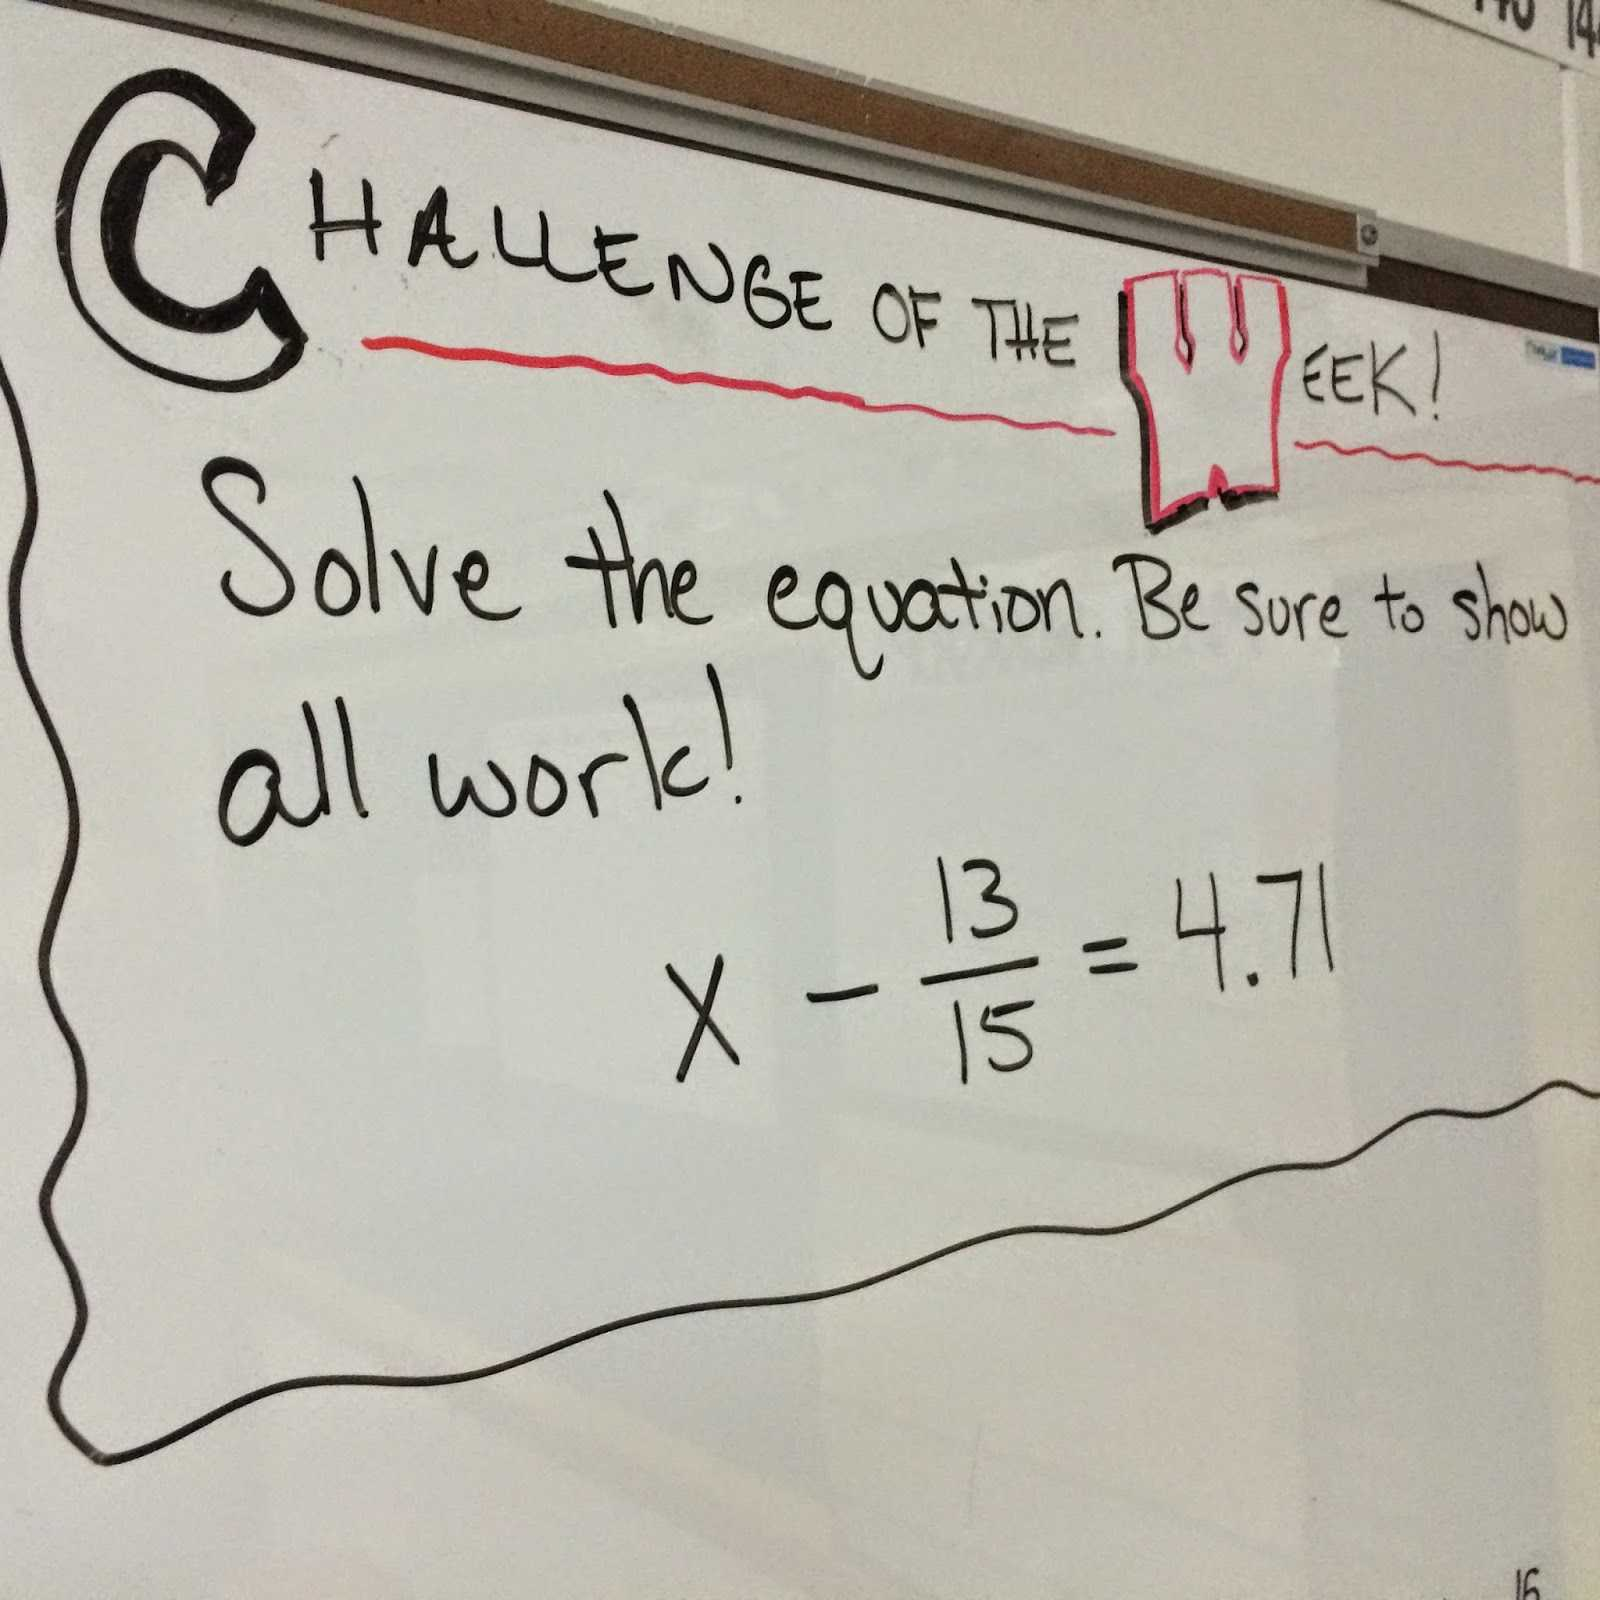 Square Root Worksheets 8th Grade Pdf as Well as Middle School Math Man Challenge Of the Week